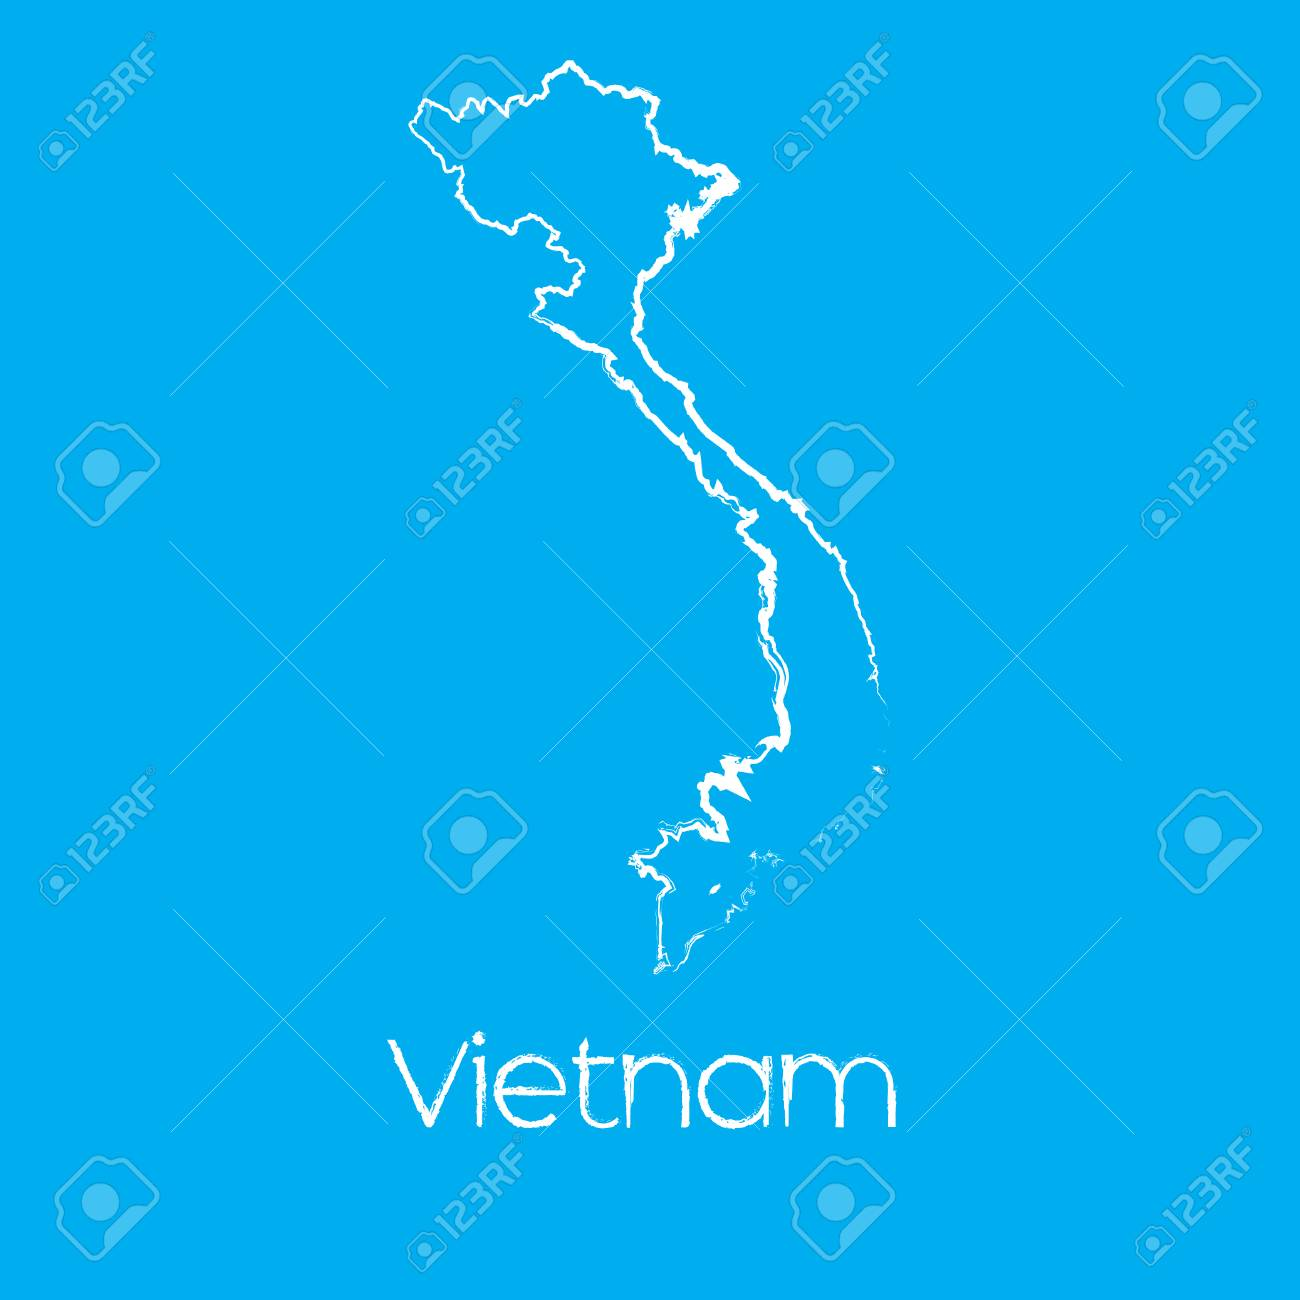 A Map Of The Country Of Vietnam Stock Photo Picture And Royalty Free Image Image 44910933